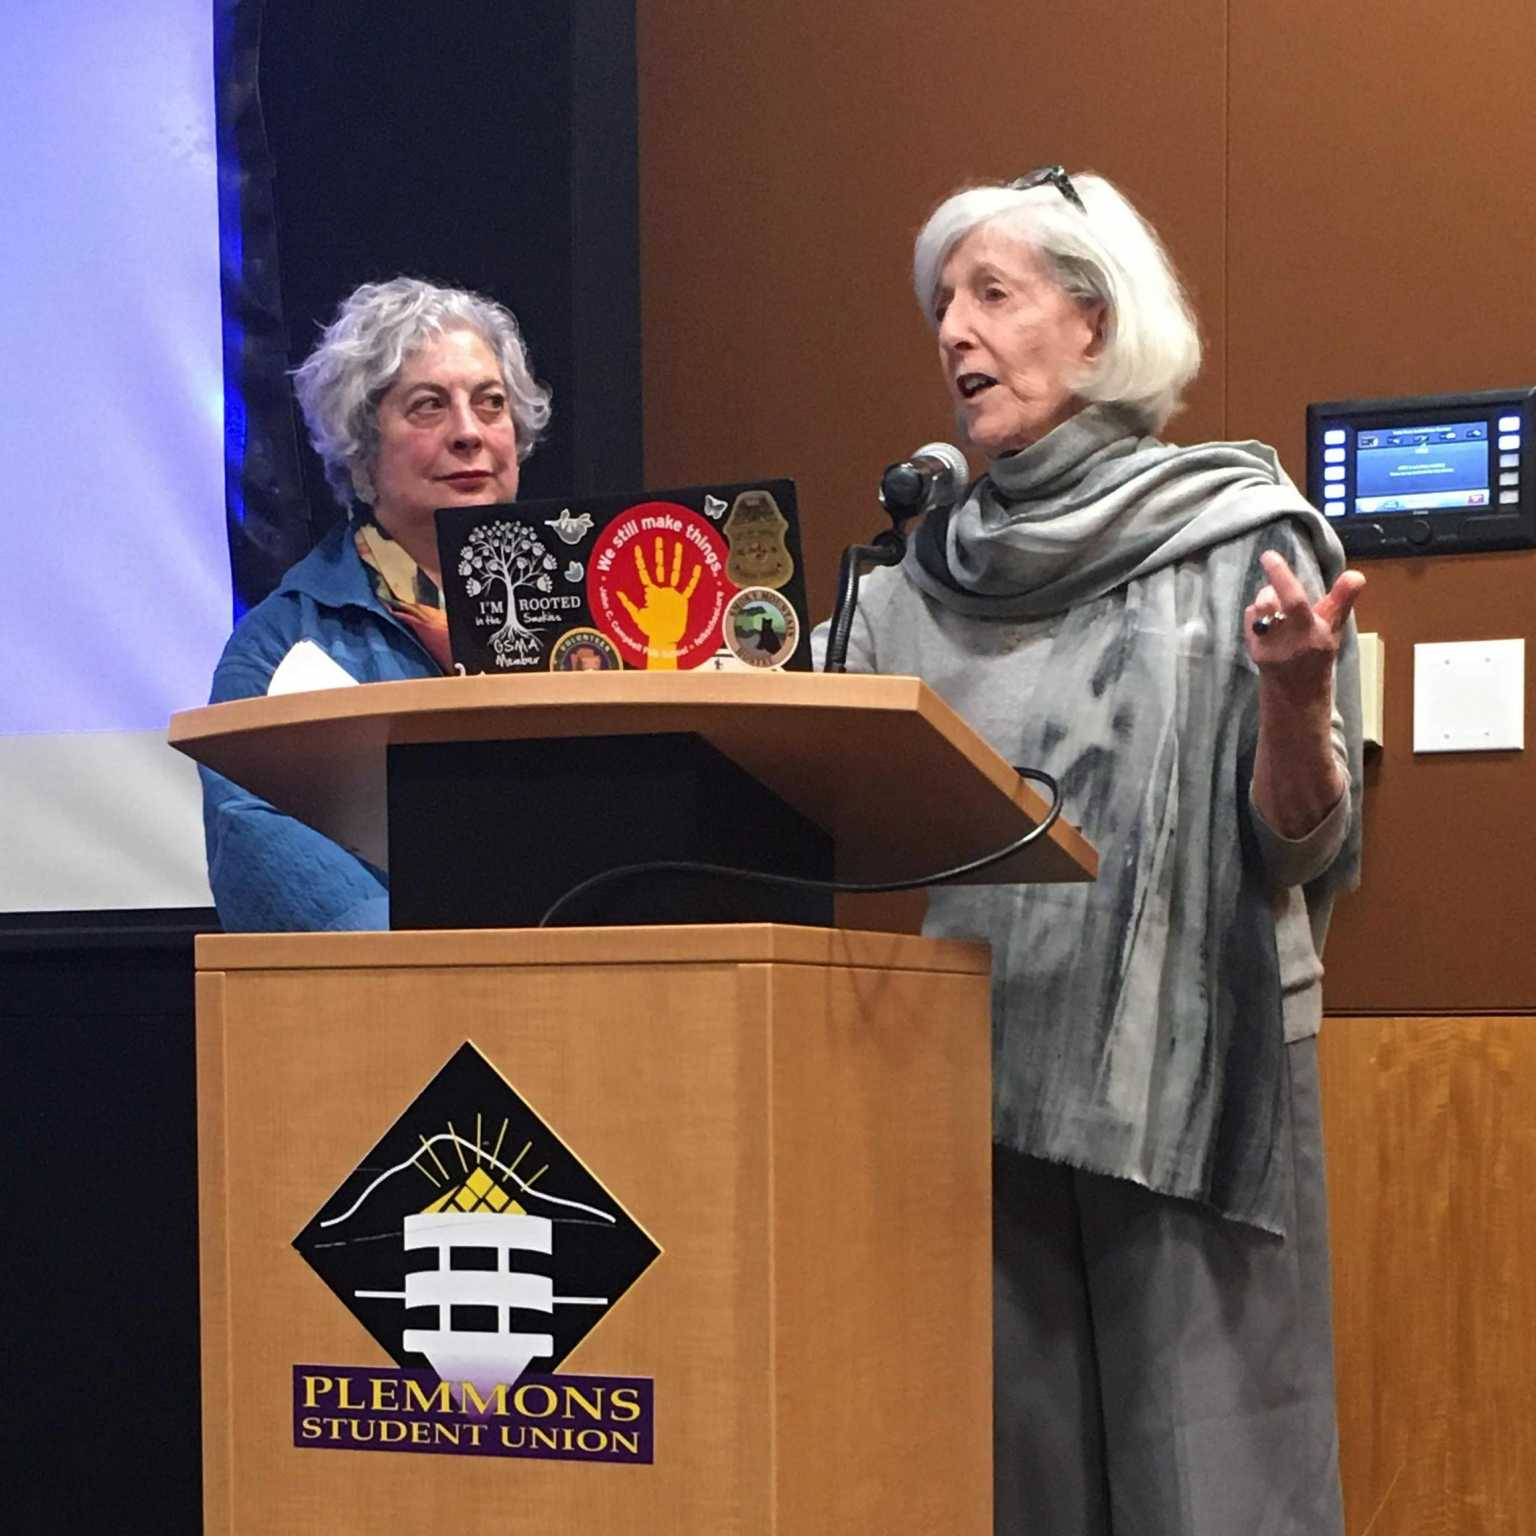 Ferris Olin (left) and Judith Brodsky (right) in their joint public lecture